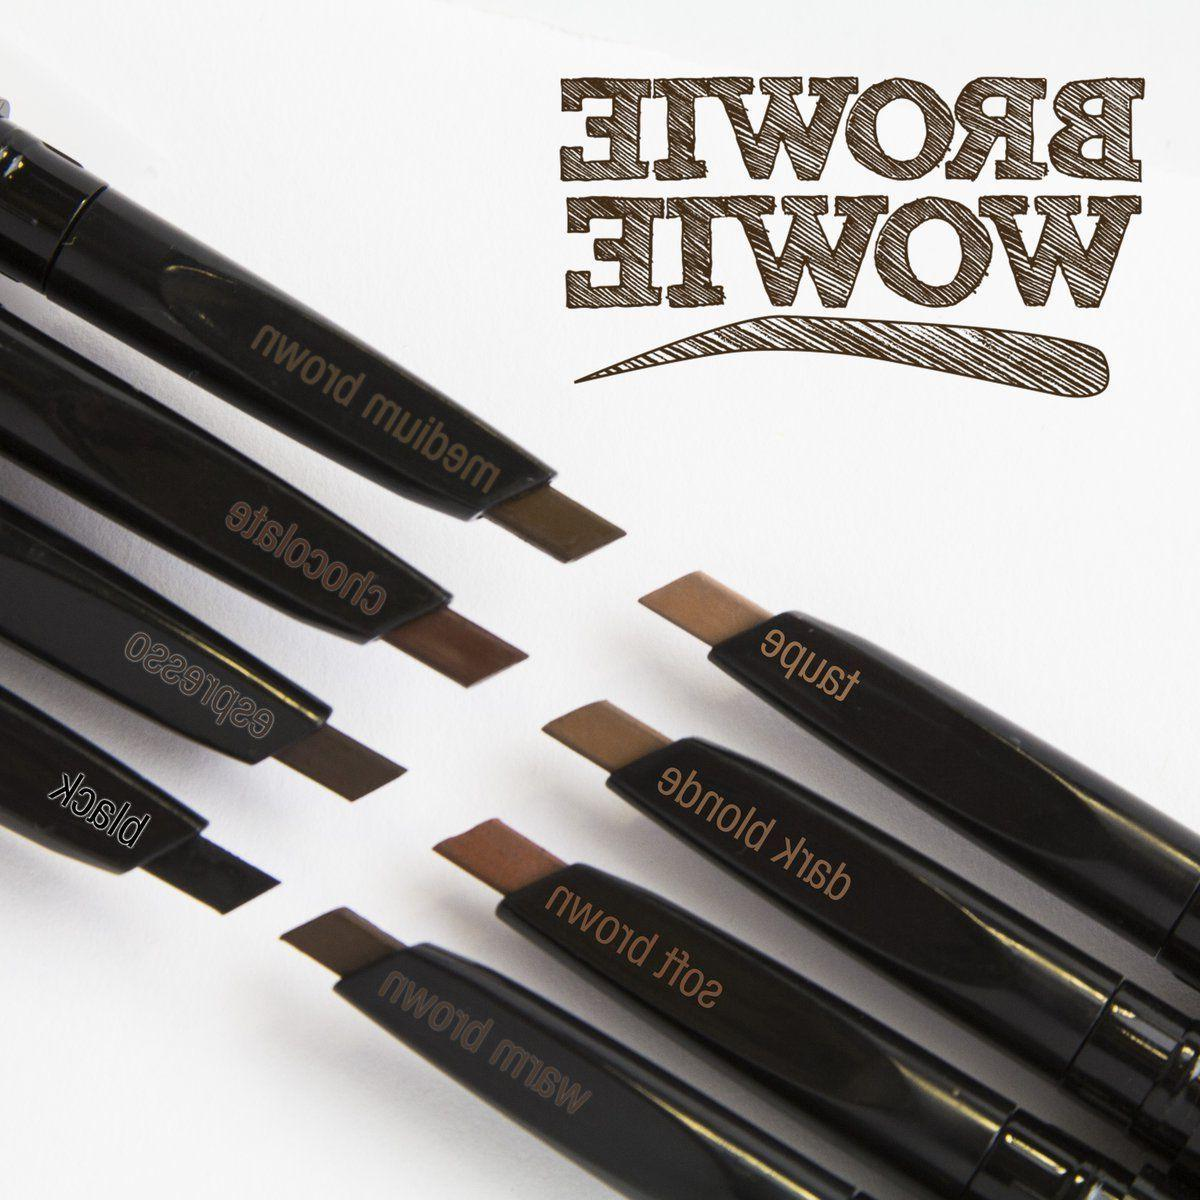 LA Colors Browie Wowie Eyebrow Pencil w/Brush - Natural look